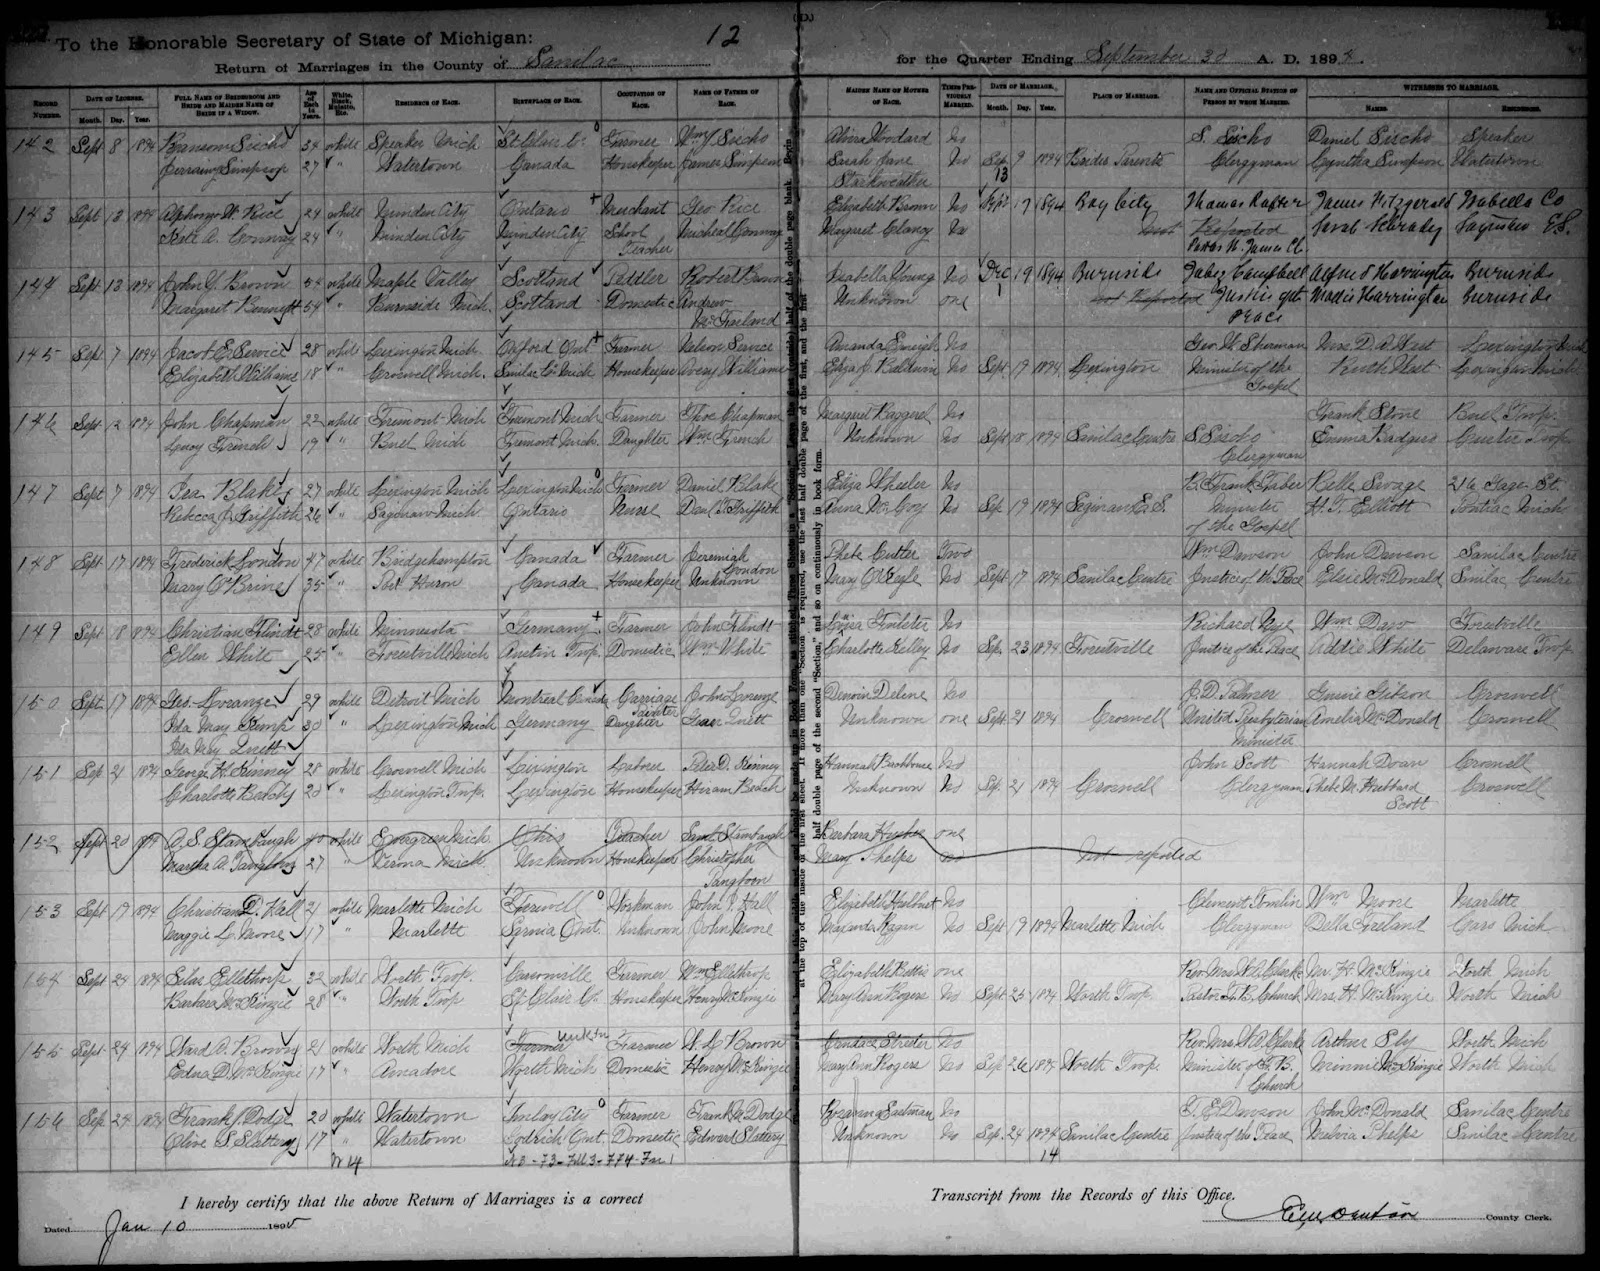 Climbing My Family Tree: Marriage record: Margaret McFarlane Bennett & John Y Brown, 19 December 1894 (3rd entry)